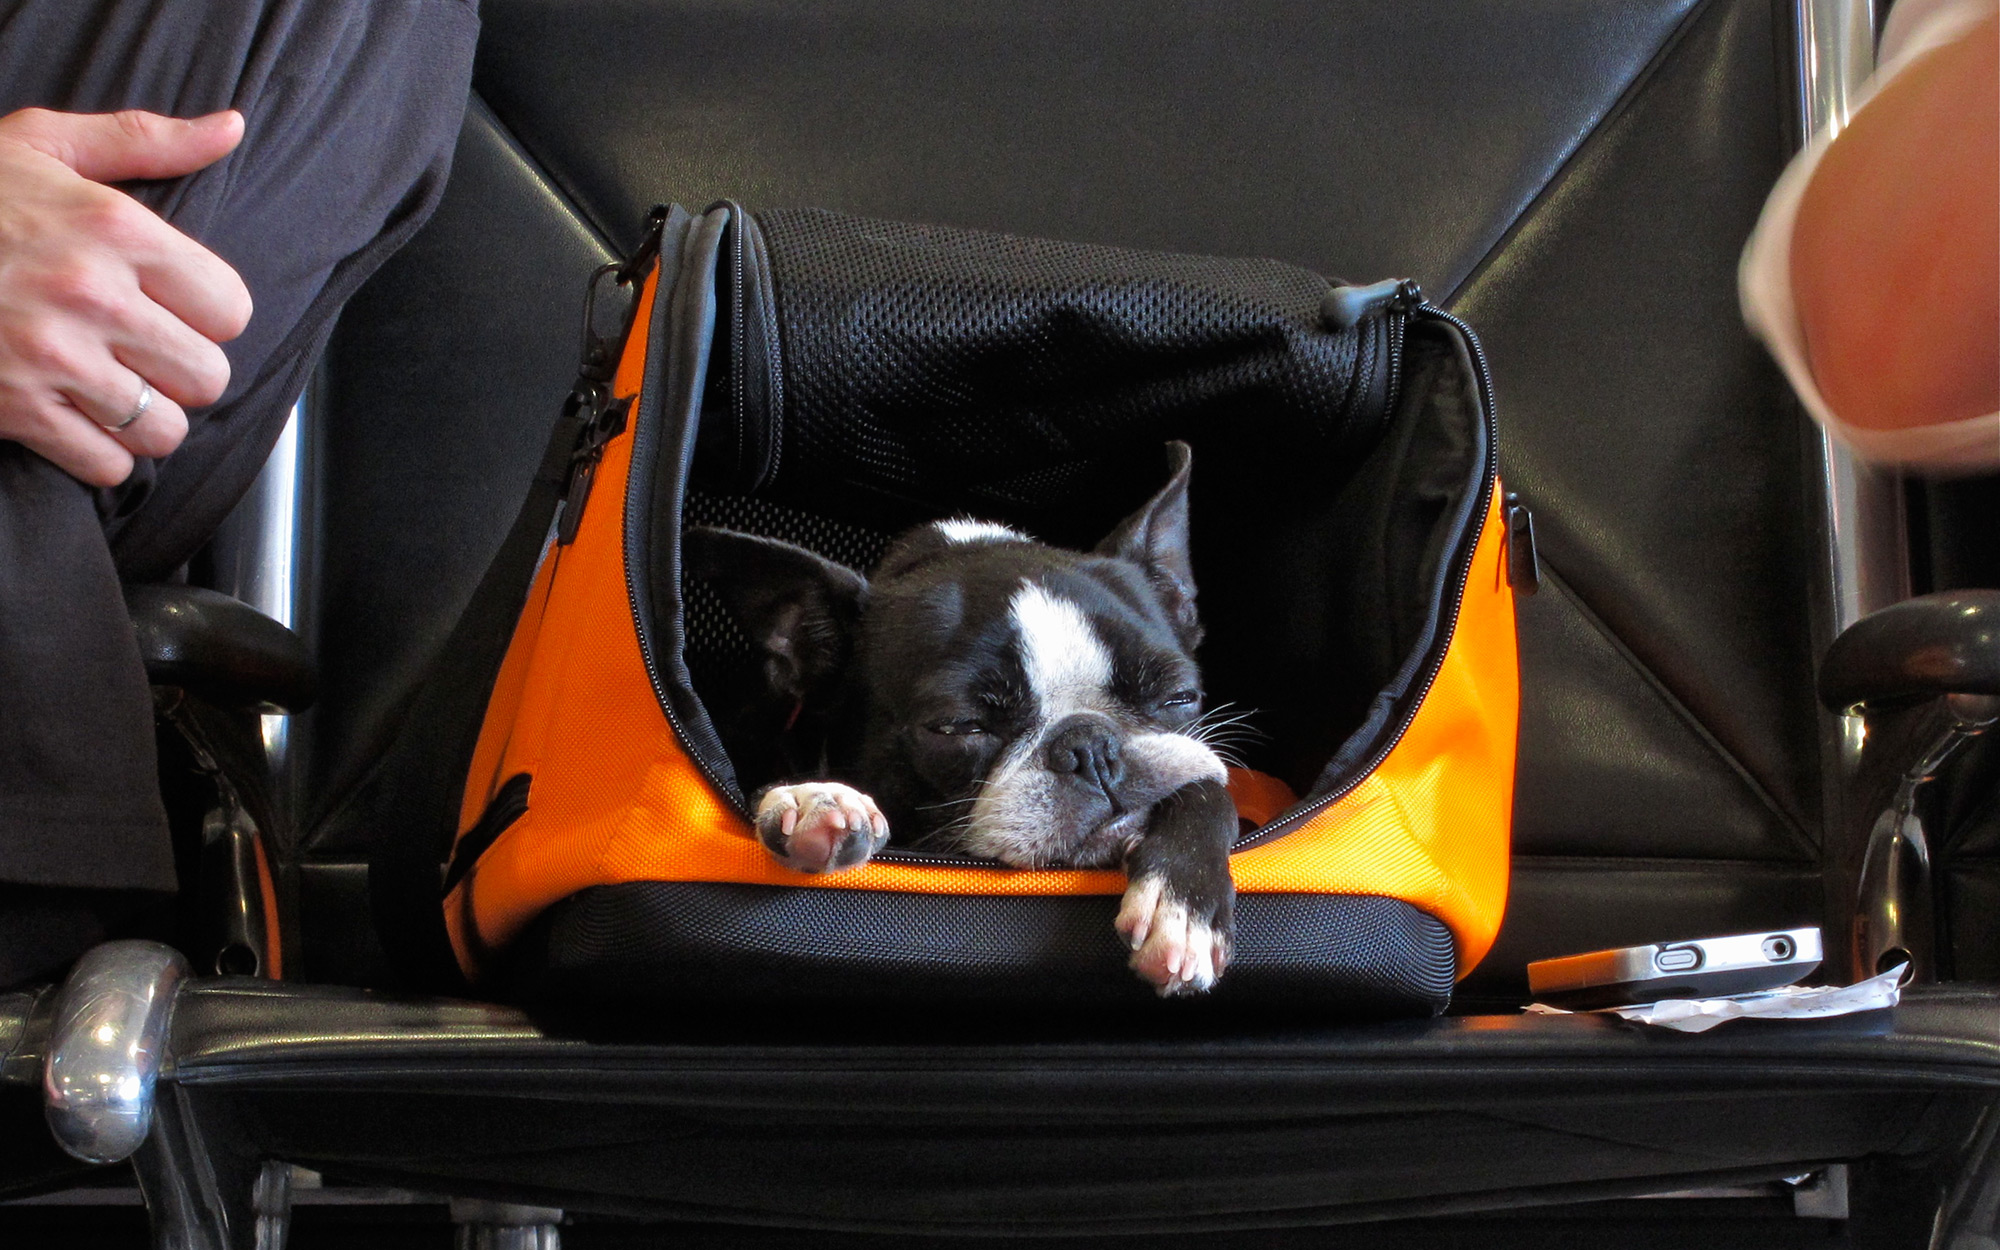 Delta's New Rules For Flying with Pets | Travel + Leisure